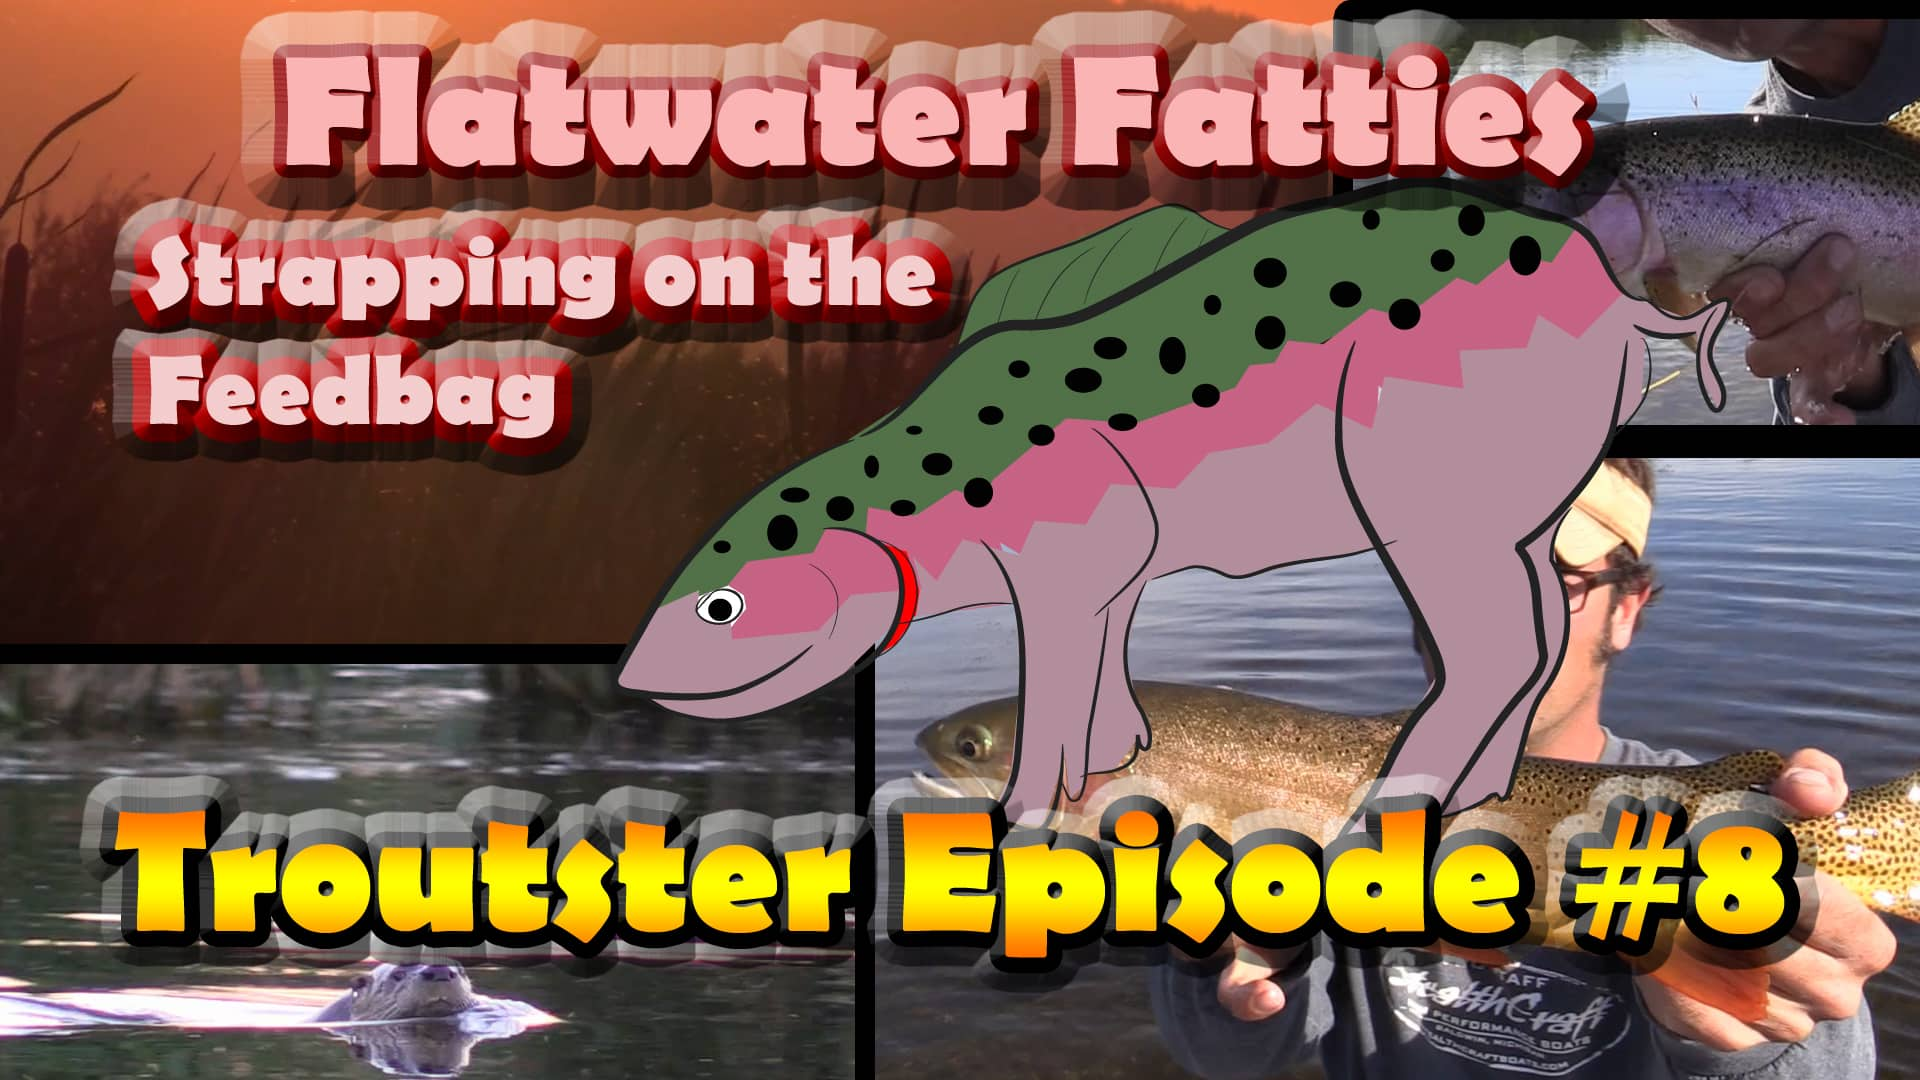 Flatwater fatties - Catching big trout on slow water with dry flies